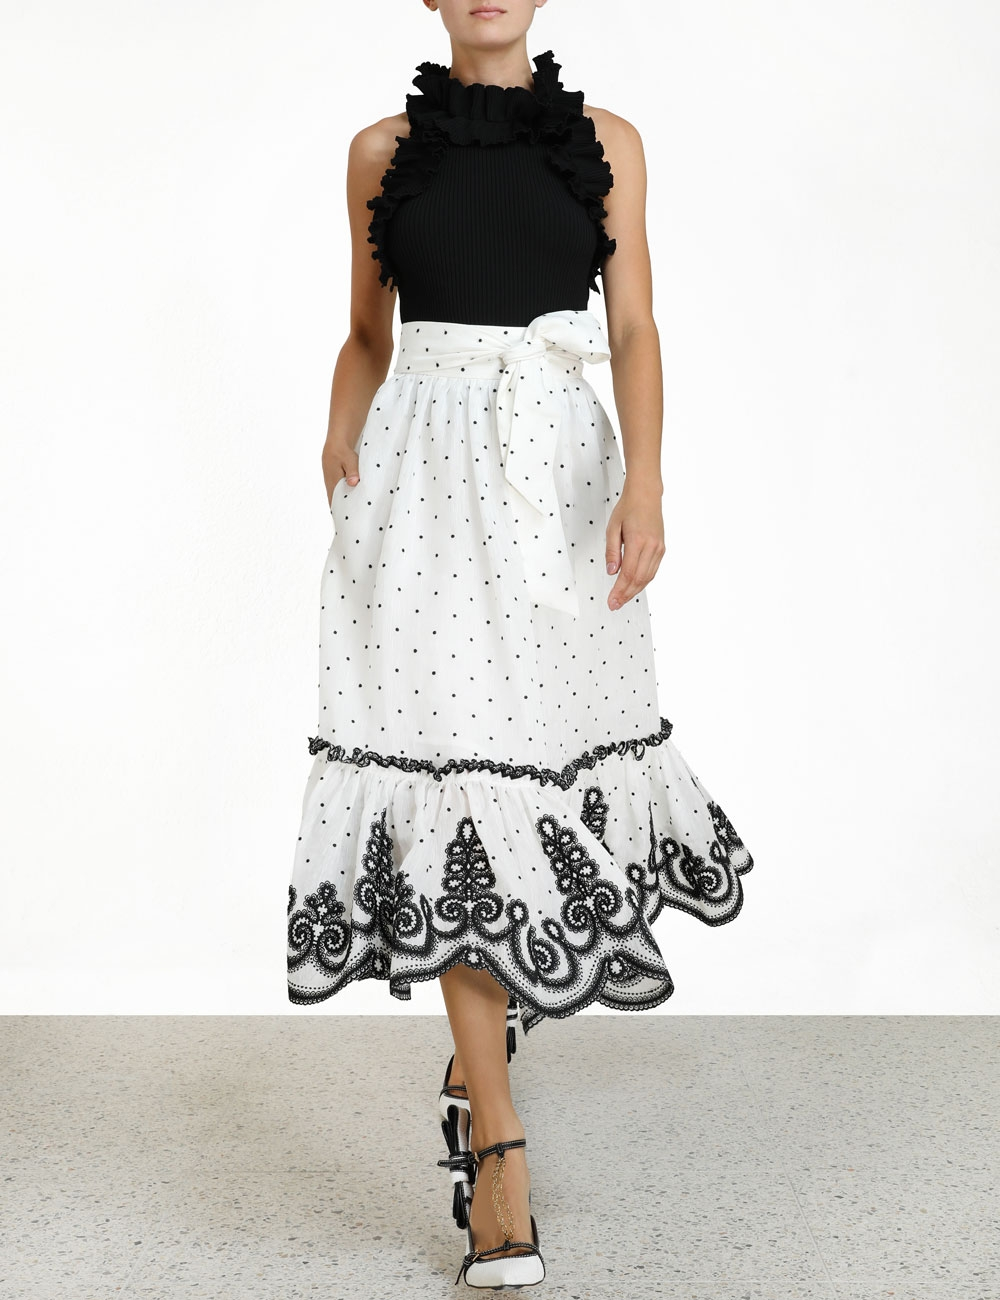 The Lovestruck Rope Skirt